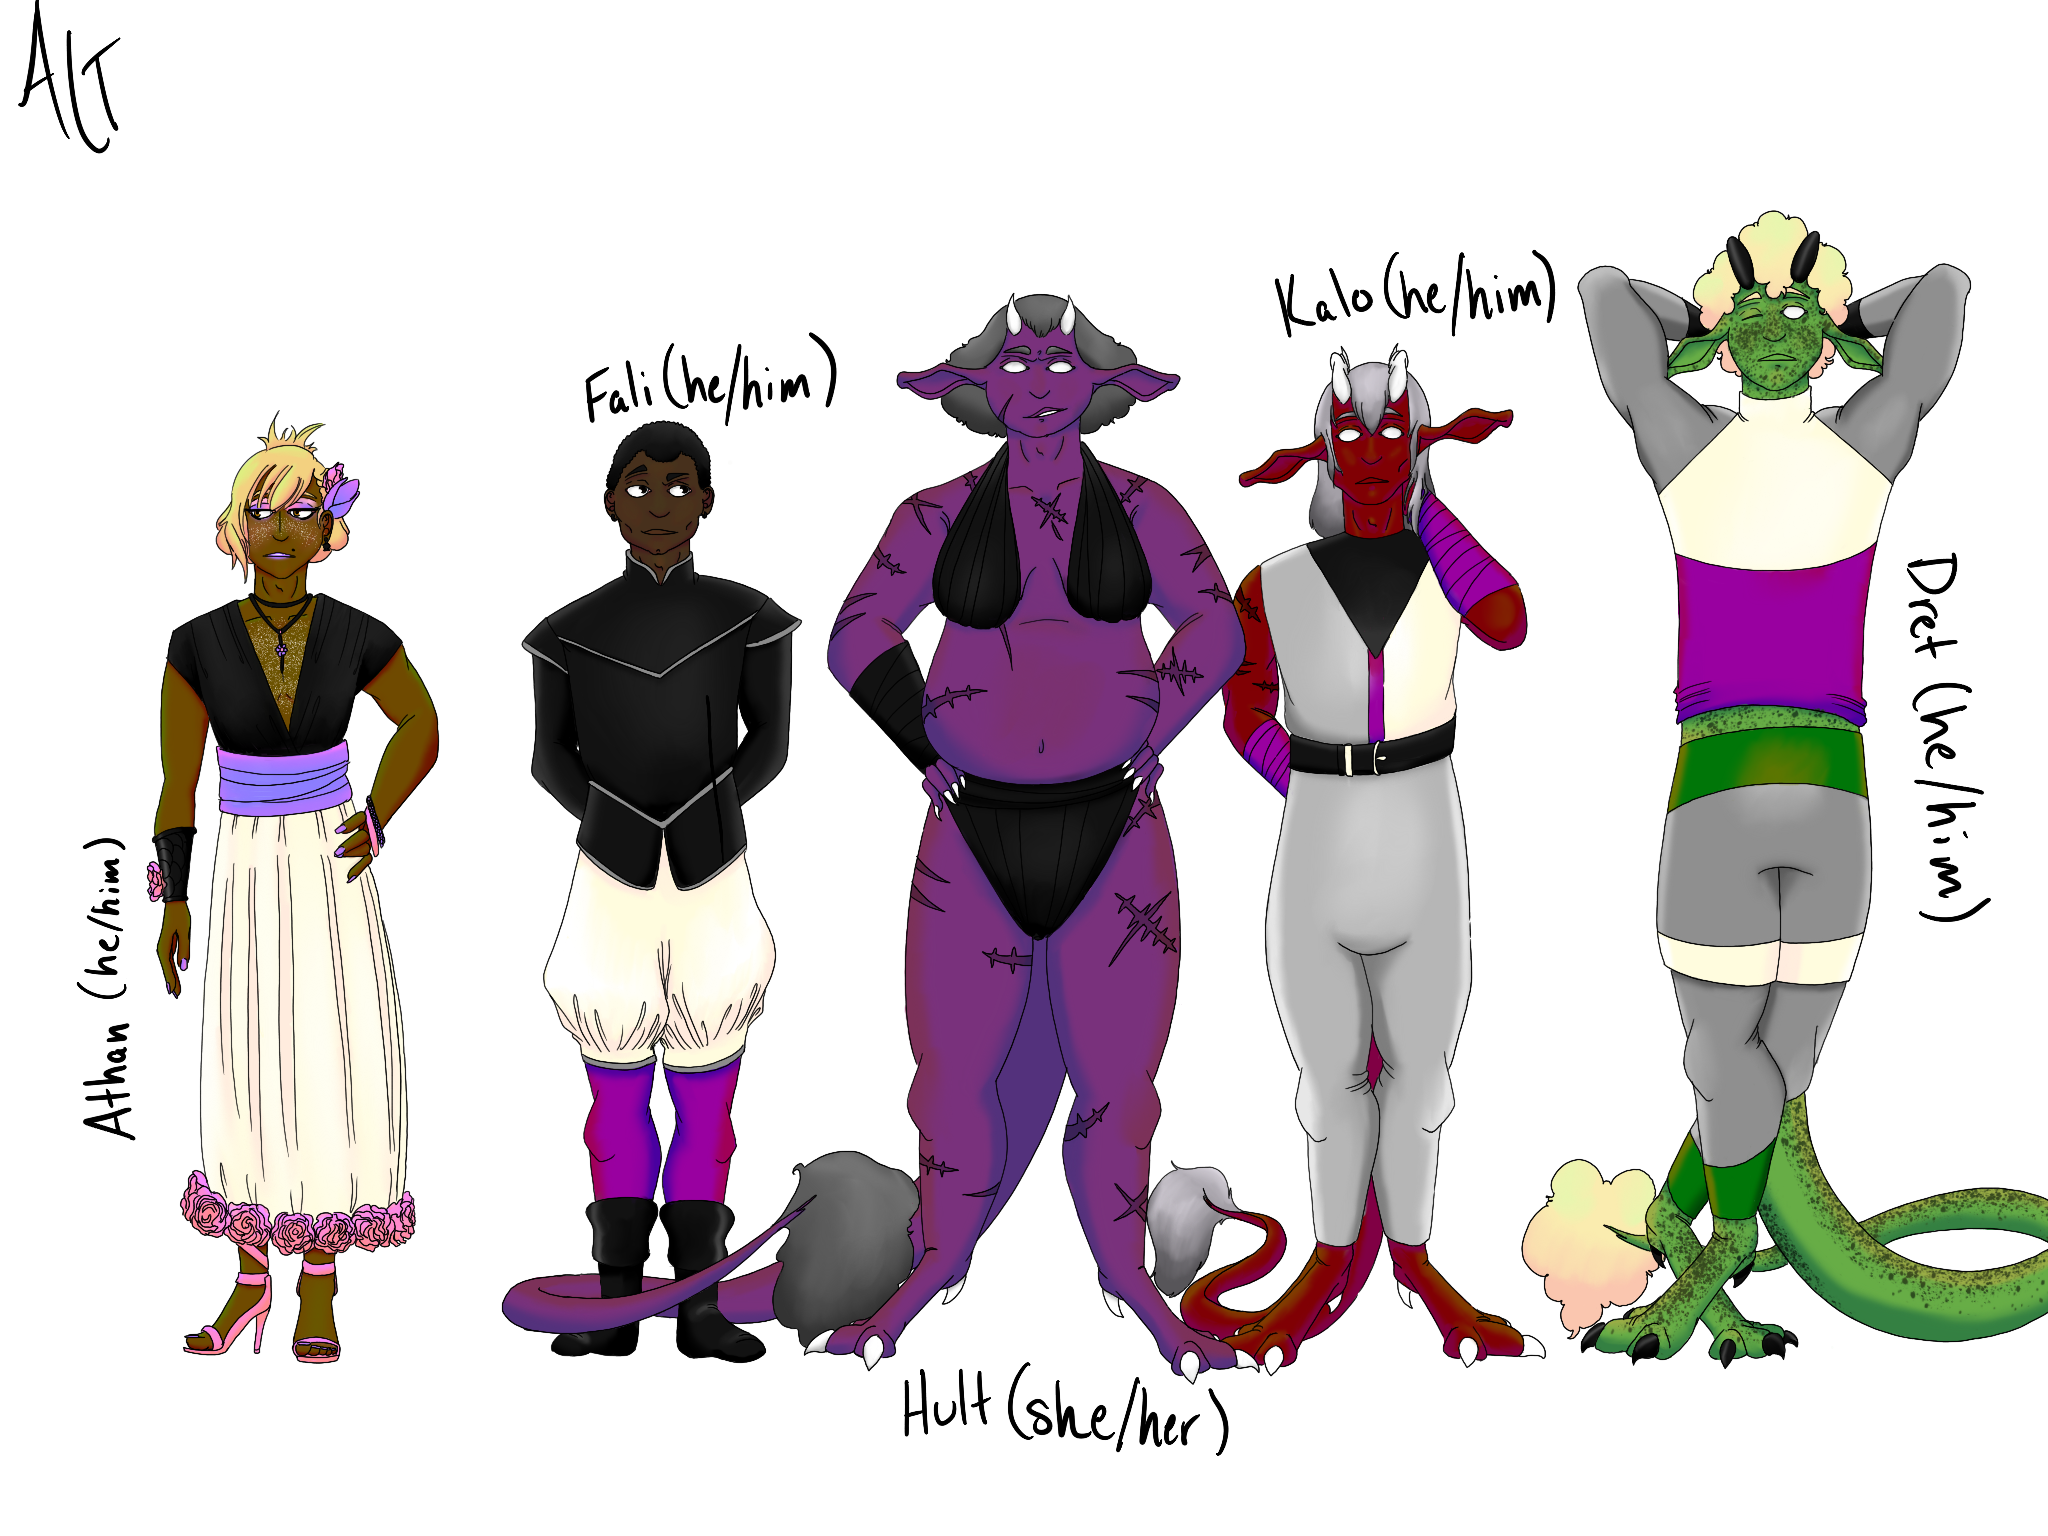 An illustration of a group of humans and devil-like people all wearing the colors of various aspec f